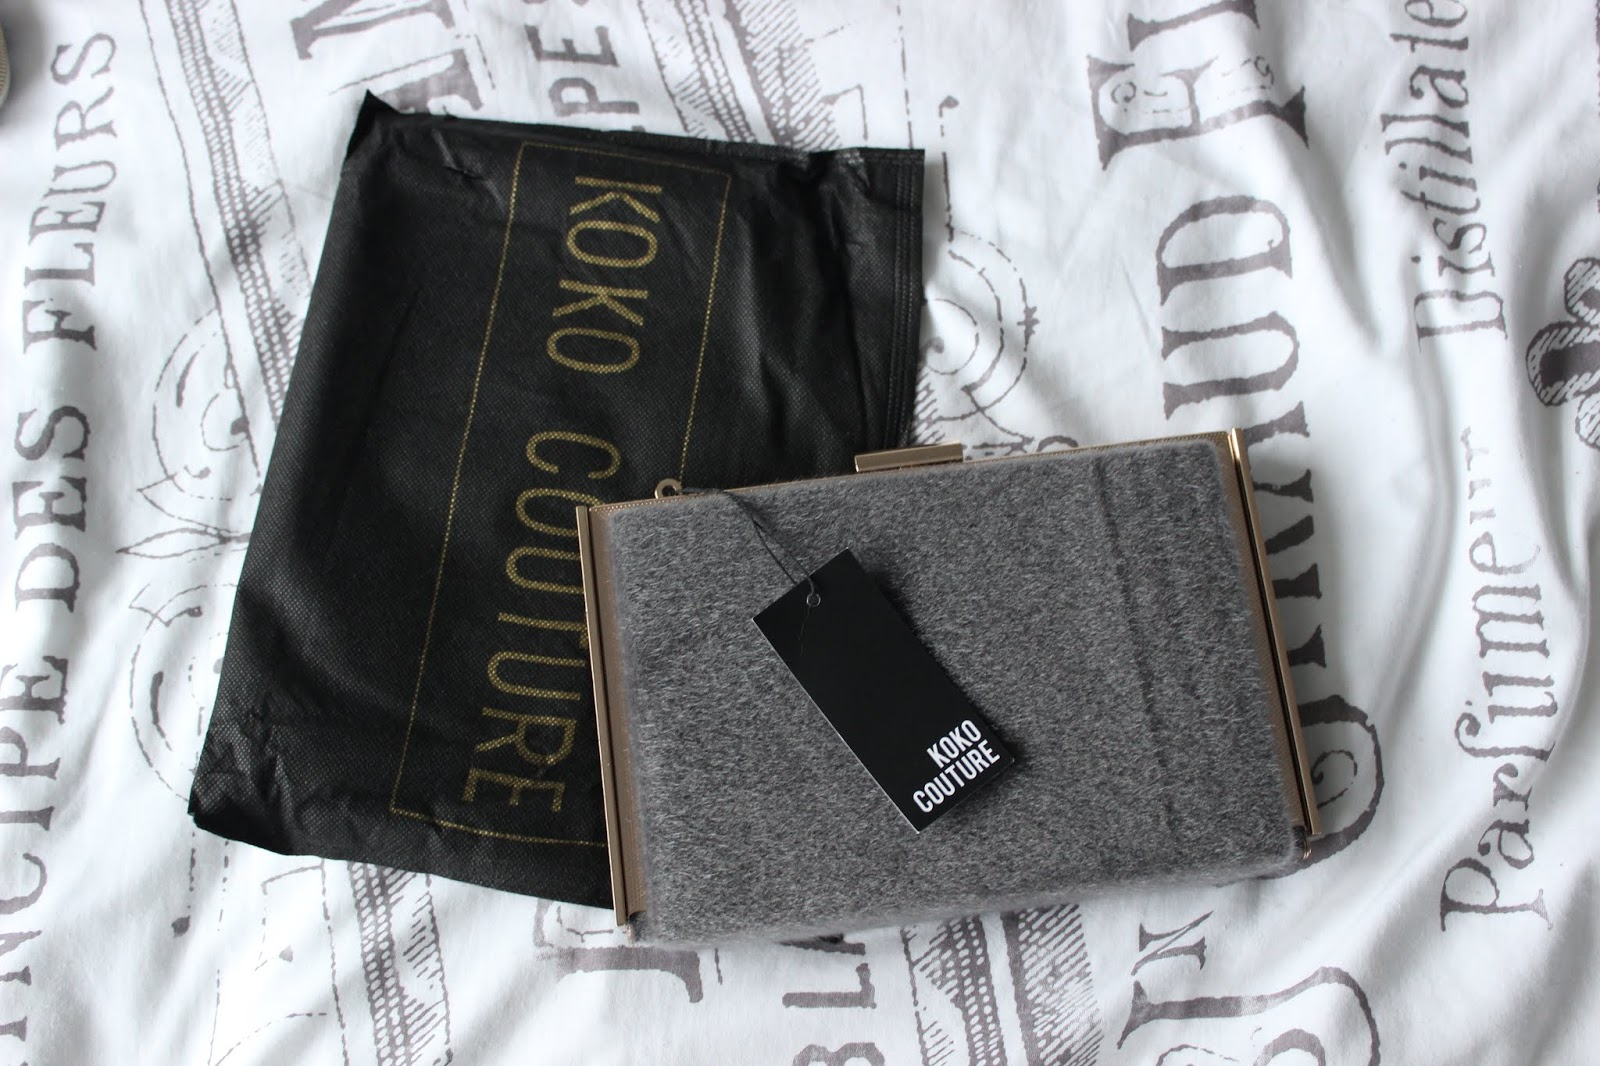 A grey fur KoKo Couture clutch bag